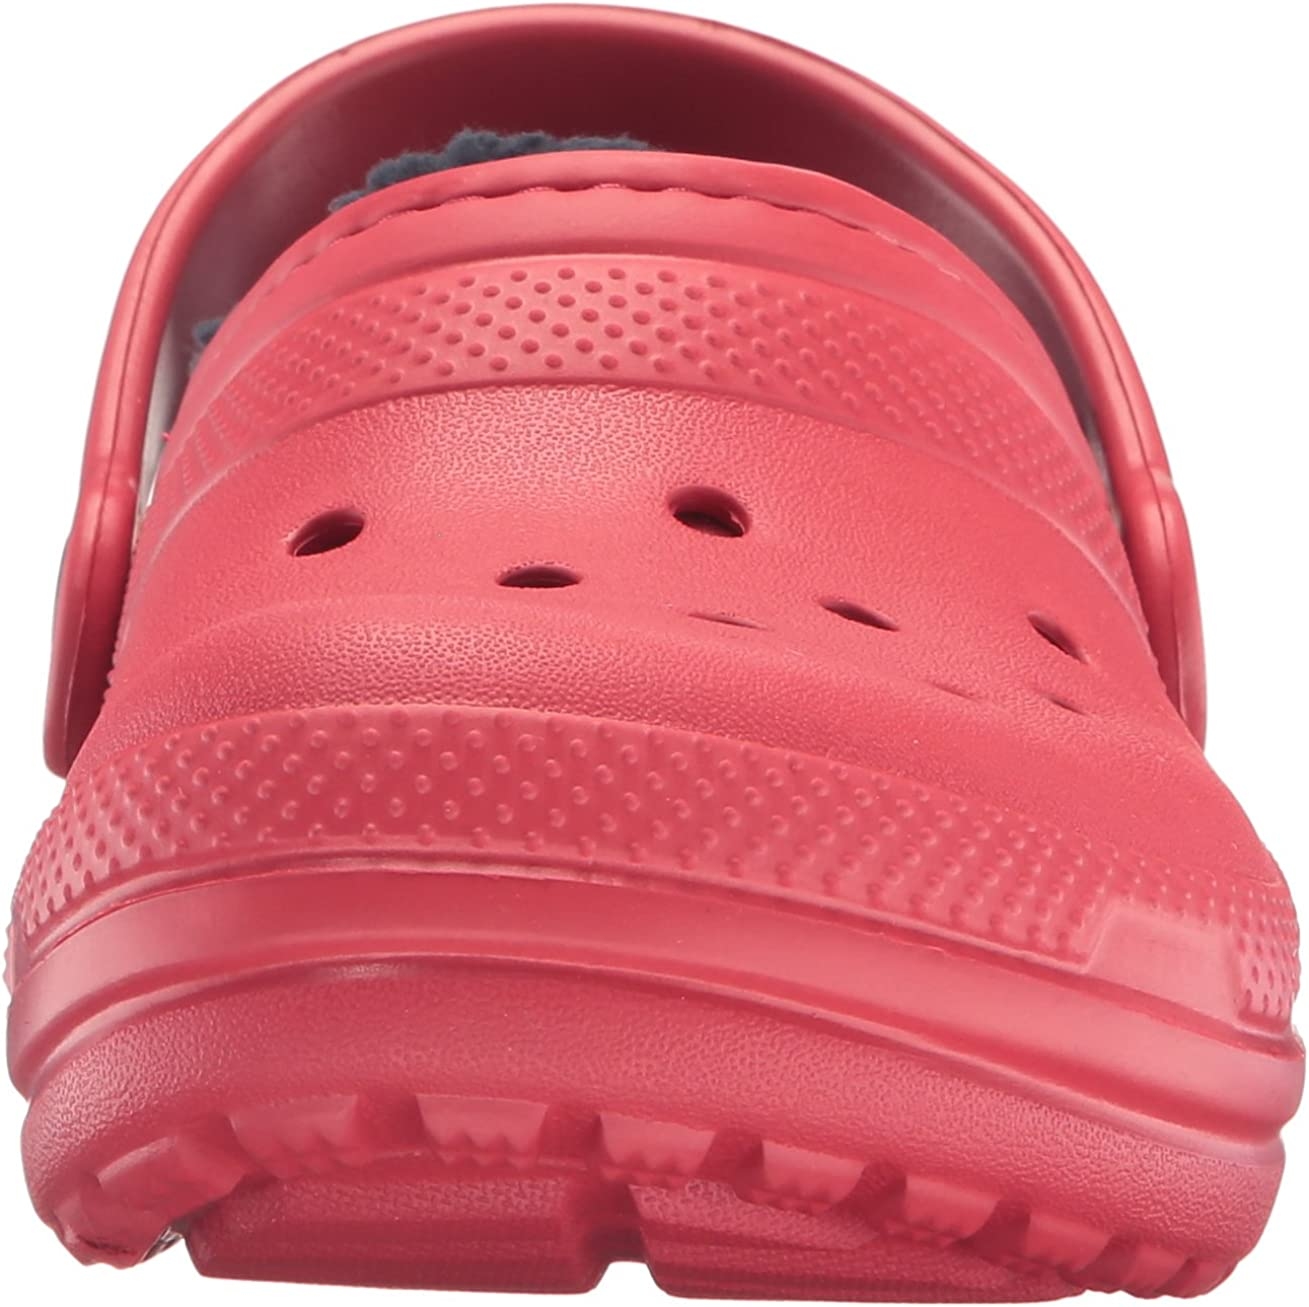 Crocs Kids Classic Buffalo Plaid Lined Clog Warm and Fuzzy Slippers for Kids